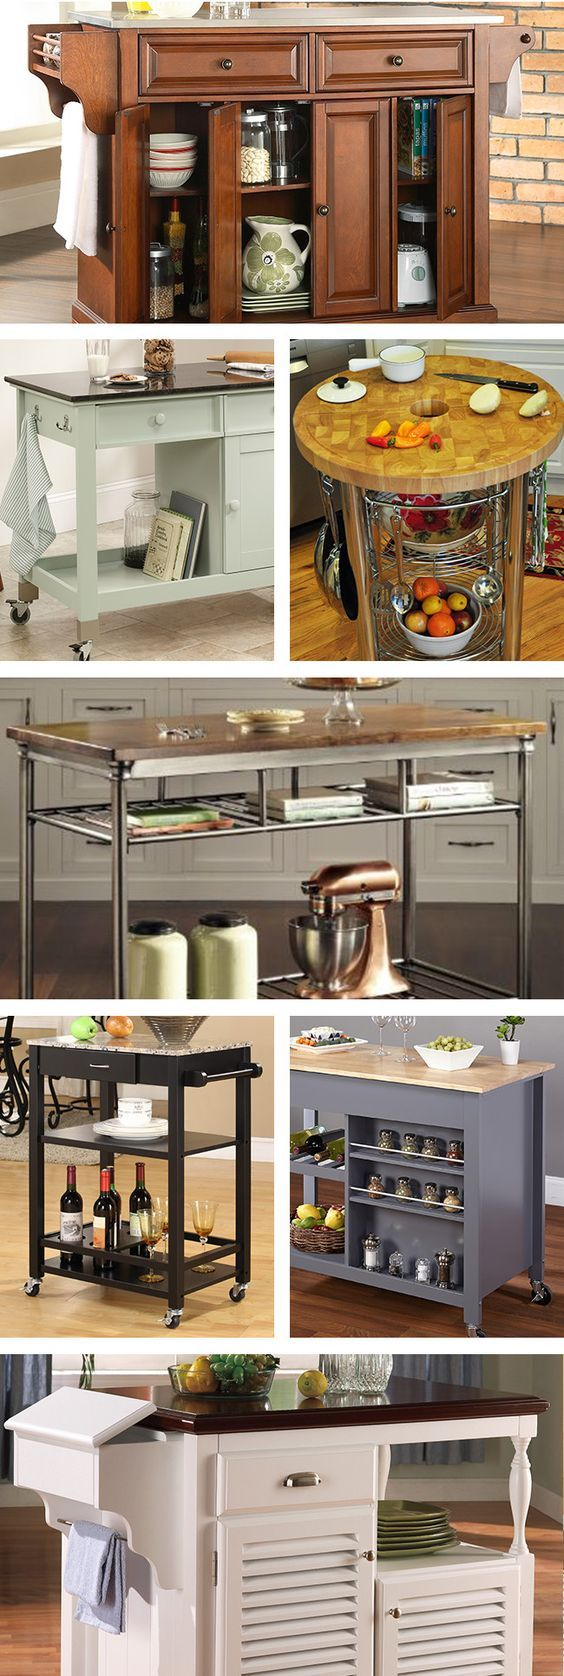 For a stylish all-in-one solution, opt for a rolling kitchen cart or an island equipped with cabinets, drawers, and lots of shelving. Visit Wayfair and sign up today to get access to exclusive deals everyday up to 70% off. Free shipping on all orders over $49.: